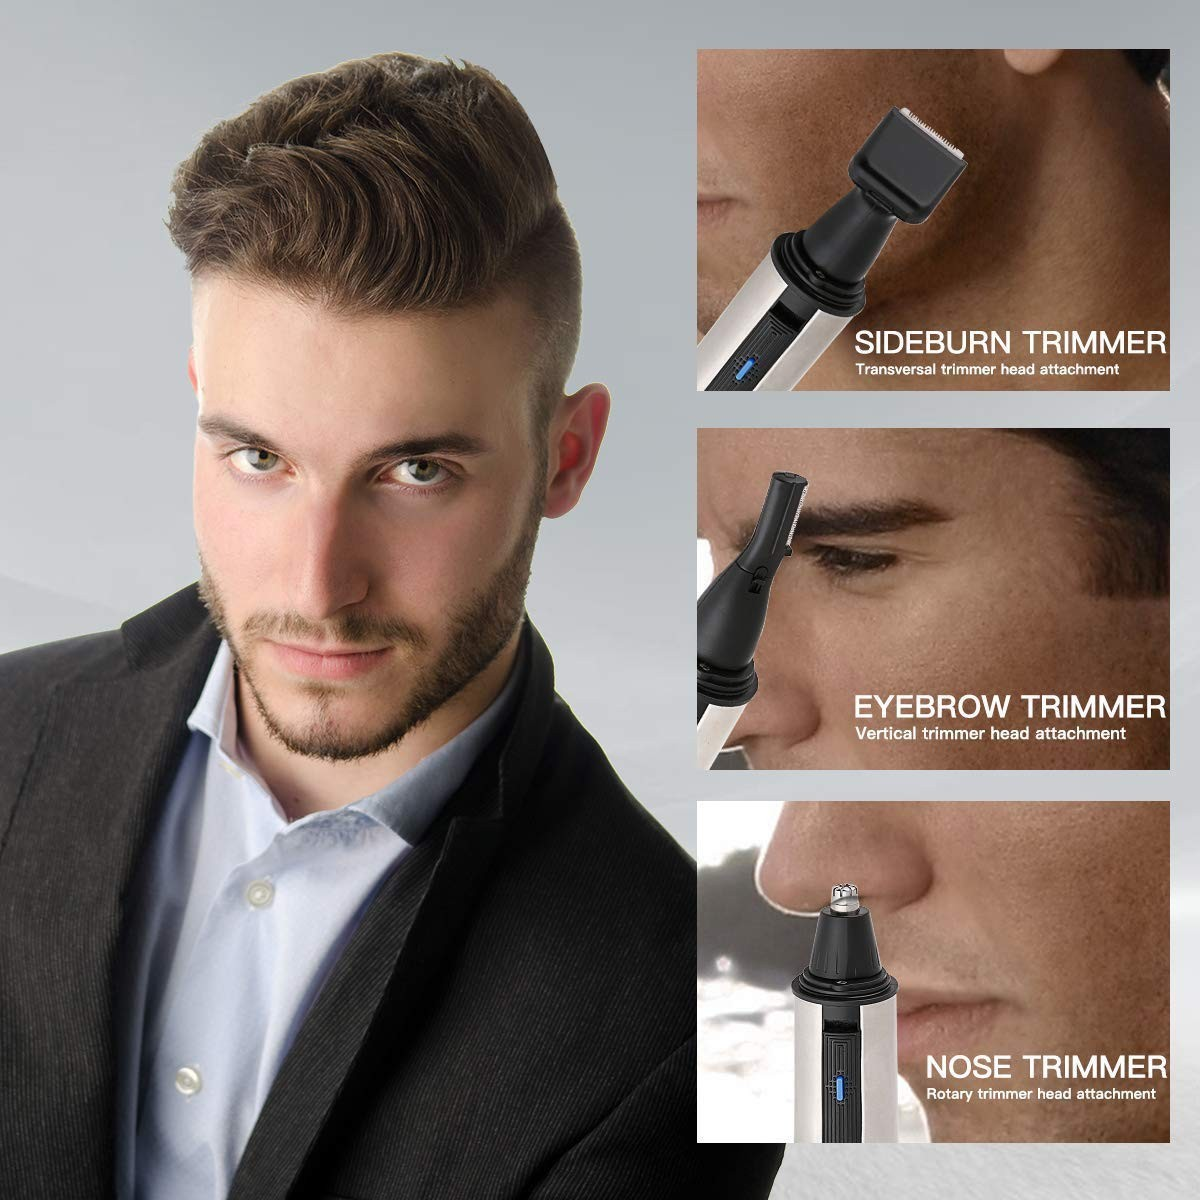 Nostril Nasal Hair Clippers Trimmers Removal, Ear Nose Hair Beard Brow Trimmer Clipper Waterproof